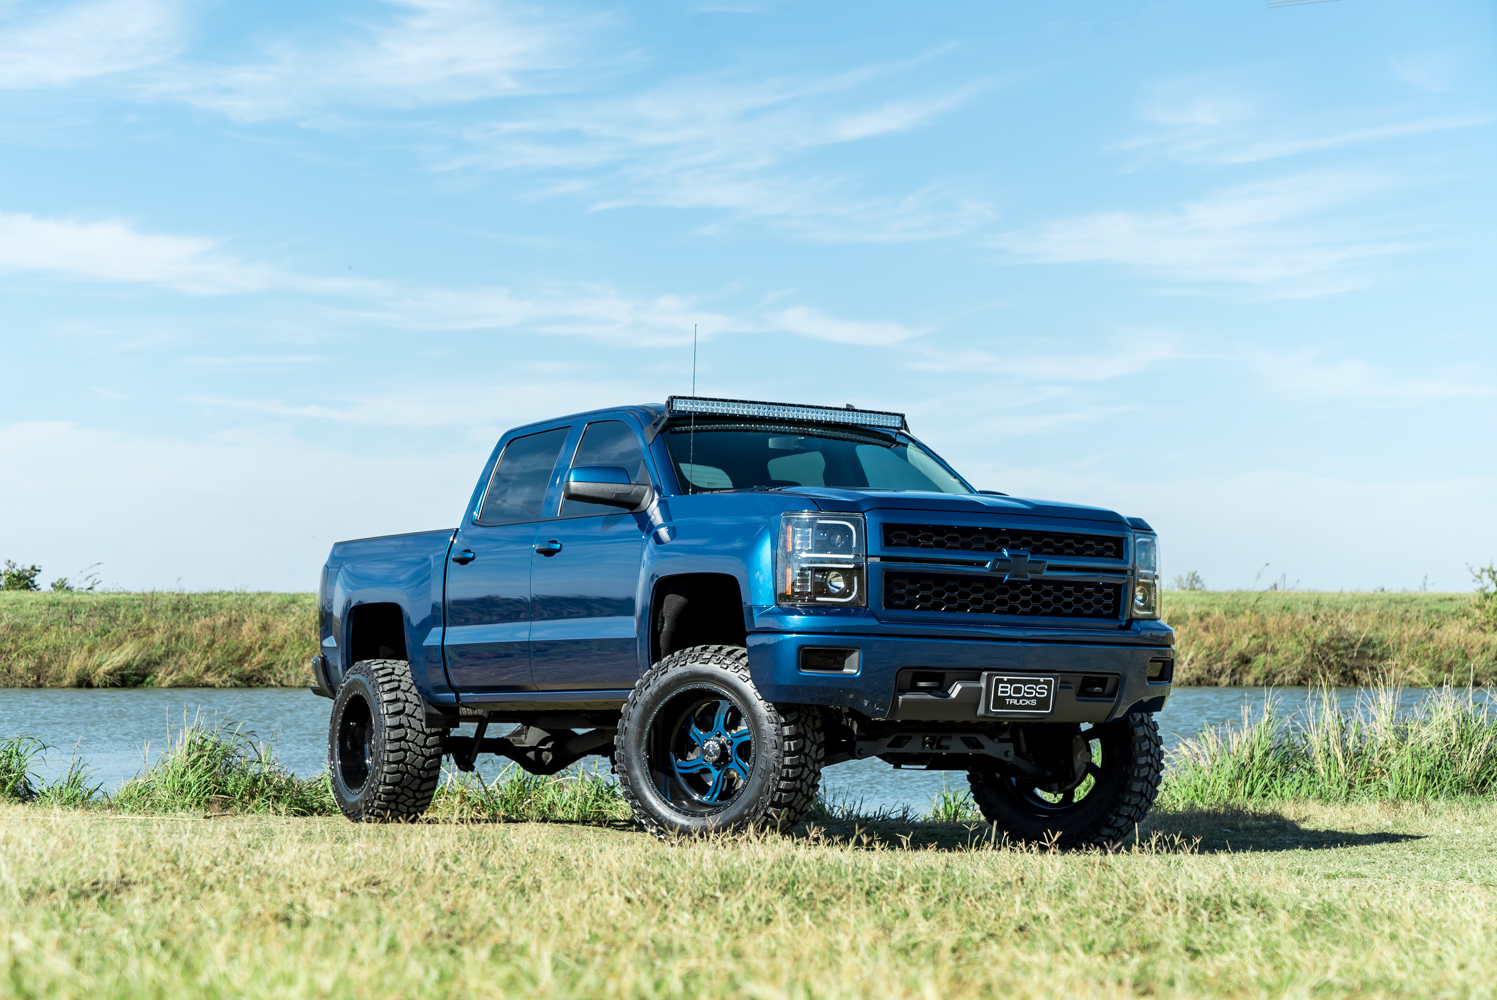 203 2015 chevrolet silverado 1500 blue. Black Bedroom Furniture Sets. Home Design Ideas